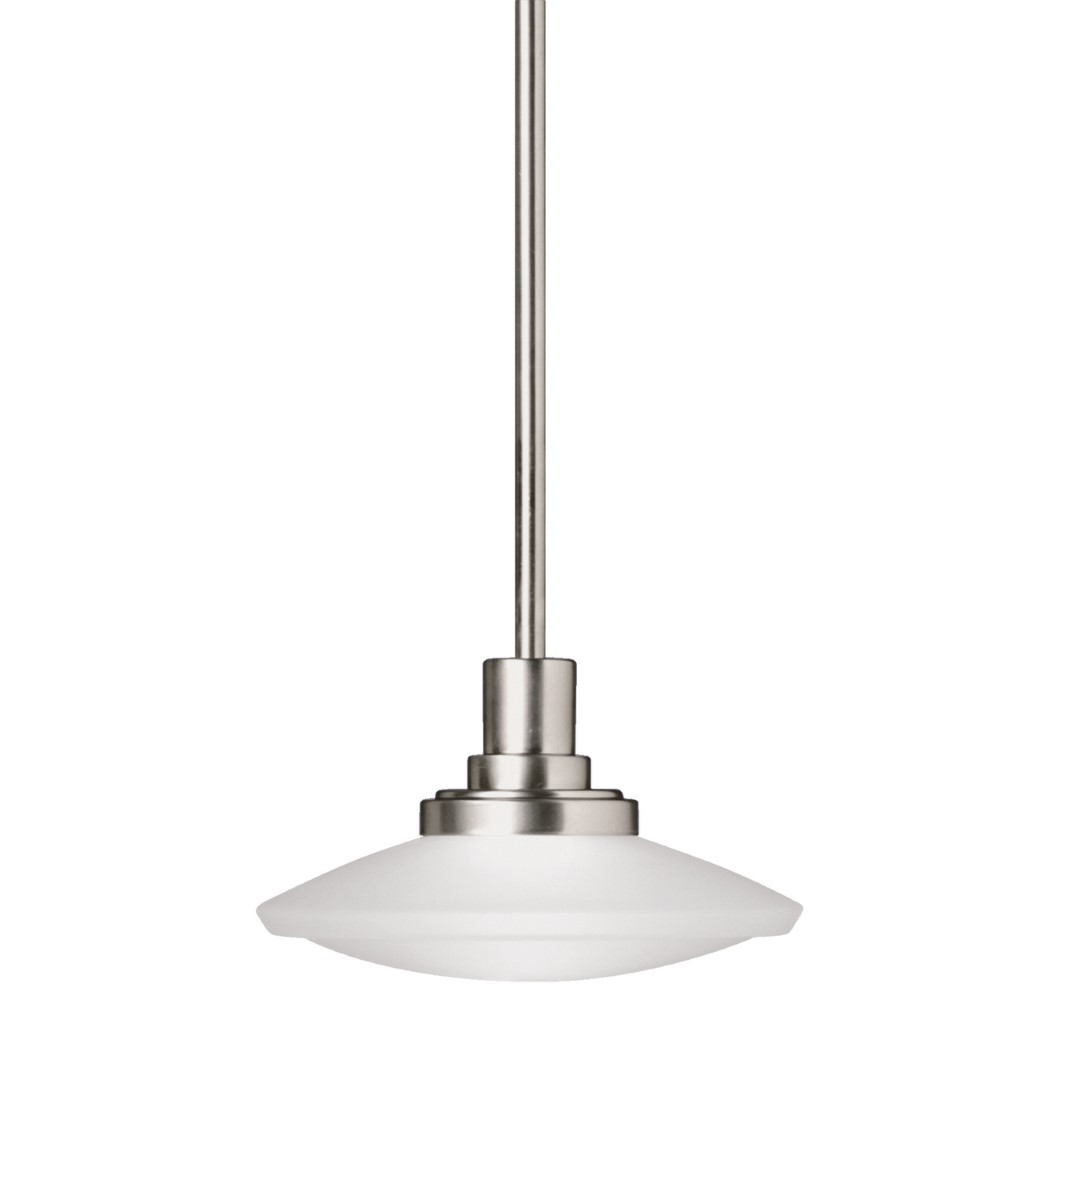 Kichler Structures Structures Pendant Light with Satin Etched Steel Shade - Brushed Nickel (2655NI)